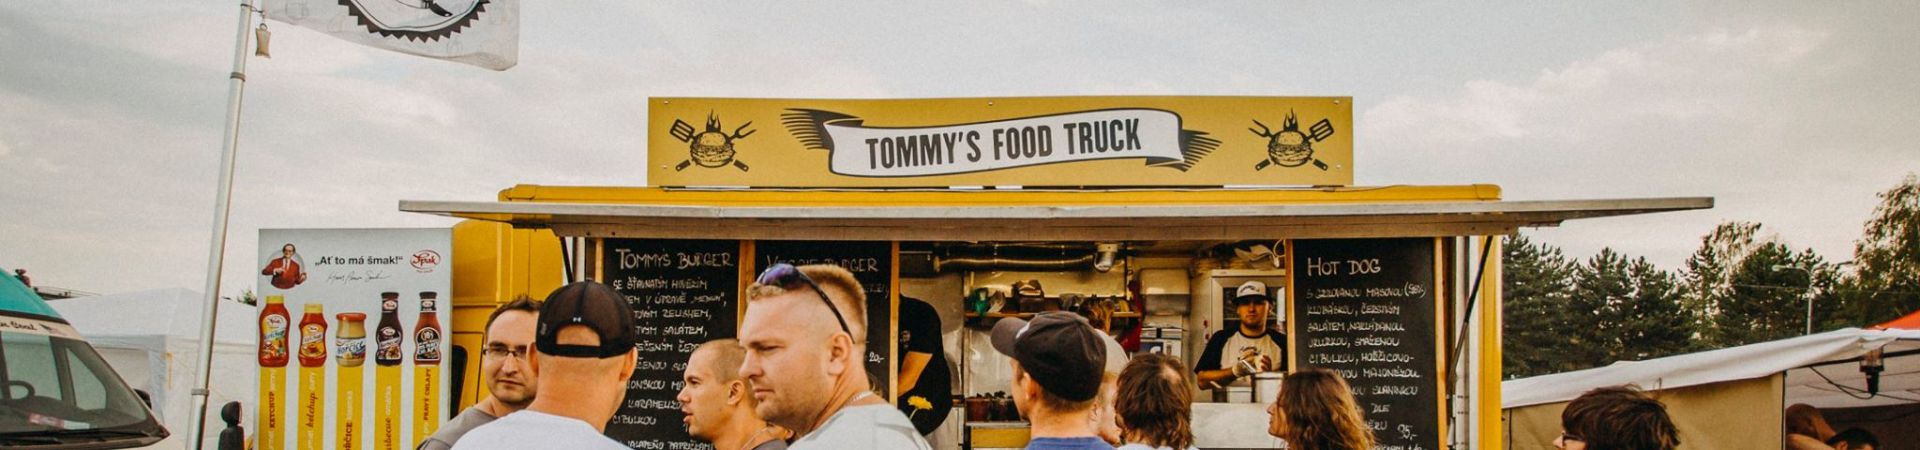 Tommy's Food Truck